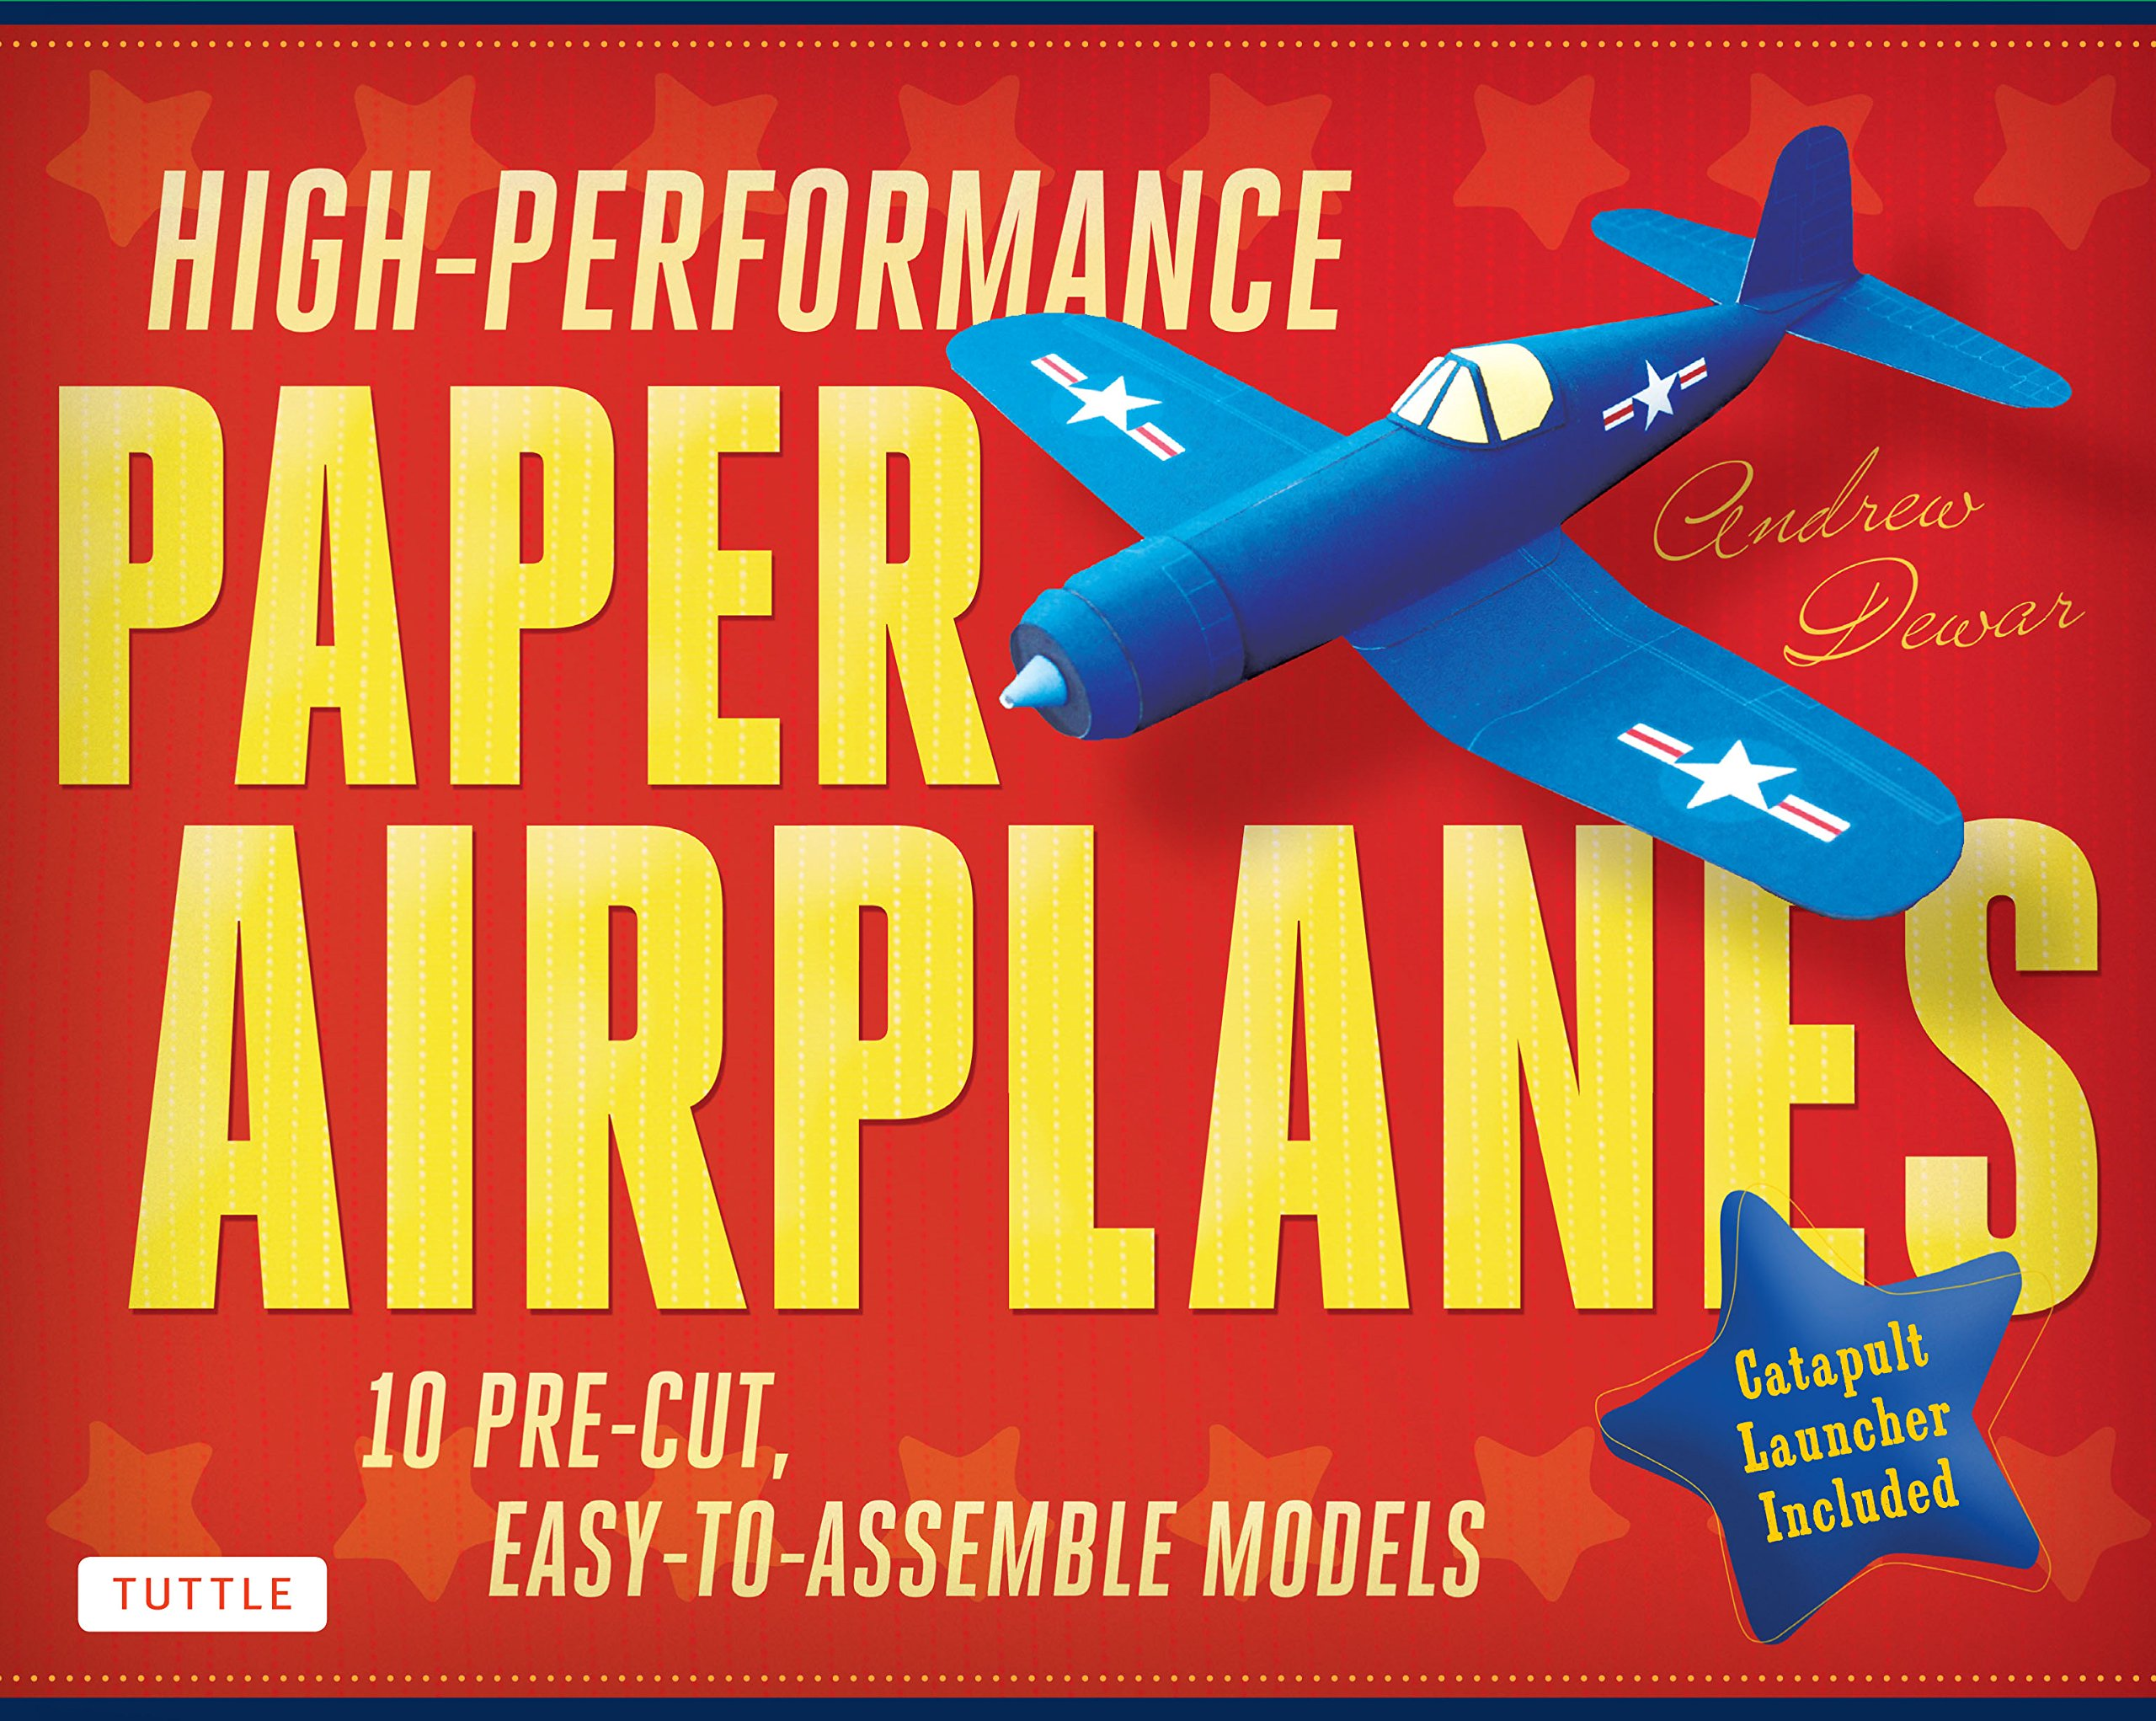 High-Performance Paper Airplanes Kit: 10 Pre-cut, Easy-to-Assemble Models: Kit with Pop-Out Cards, Paper Airplanes Book, & Catapult Launcher: Great for Kids and Parents! by Tuttle Publishing